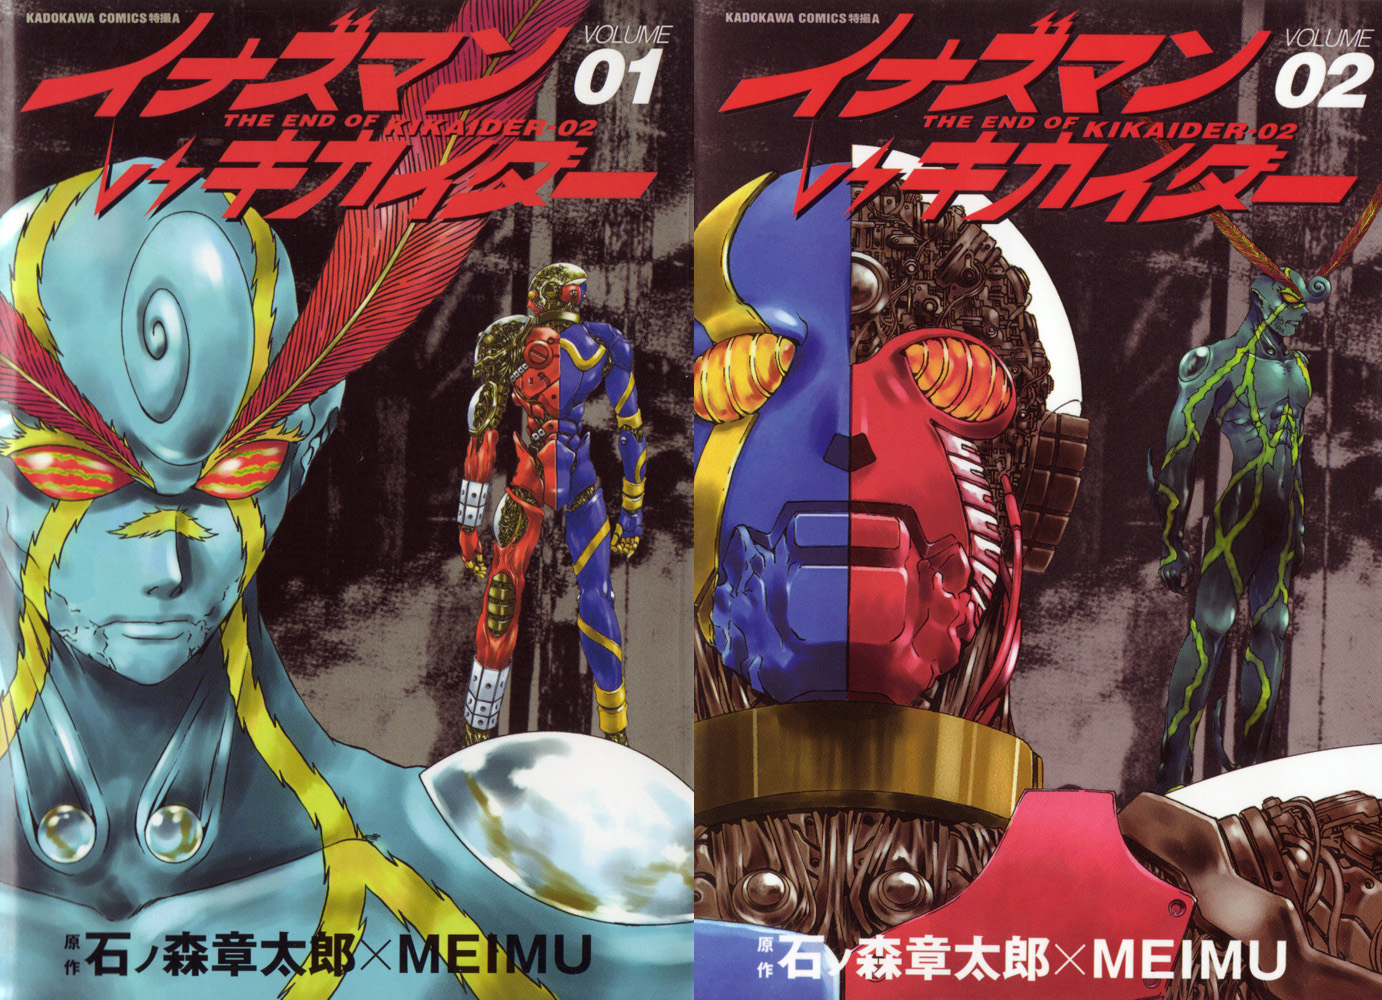 Kikaider Episode 5 Anime Infinit